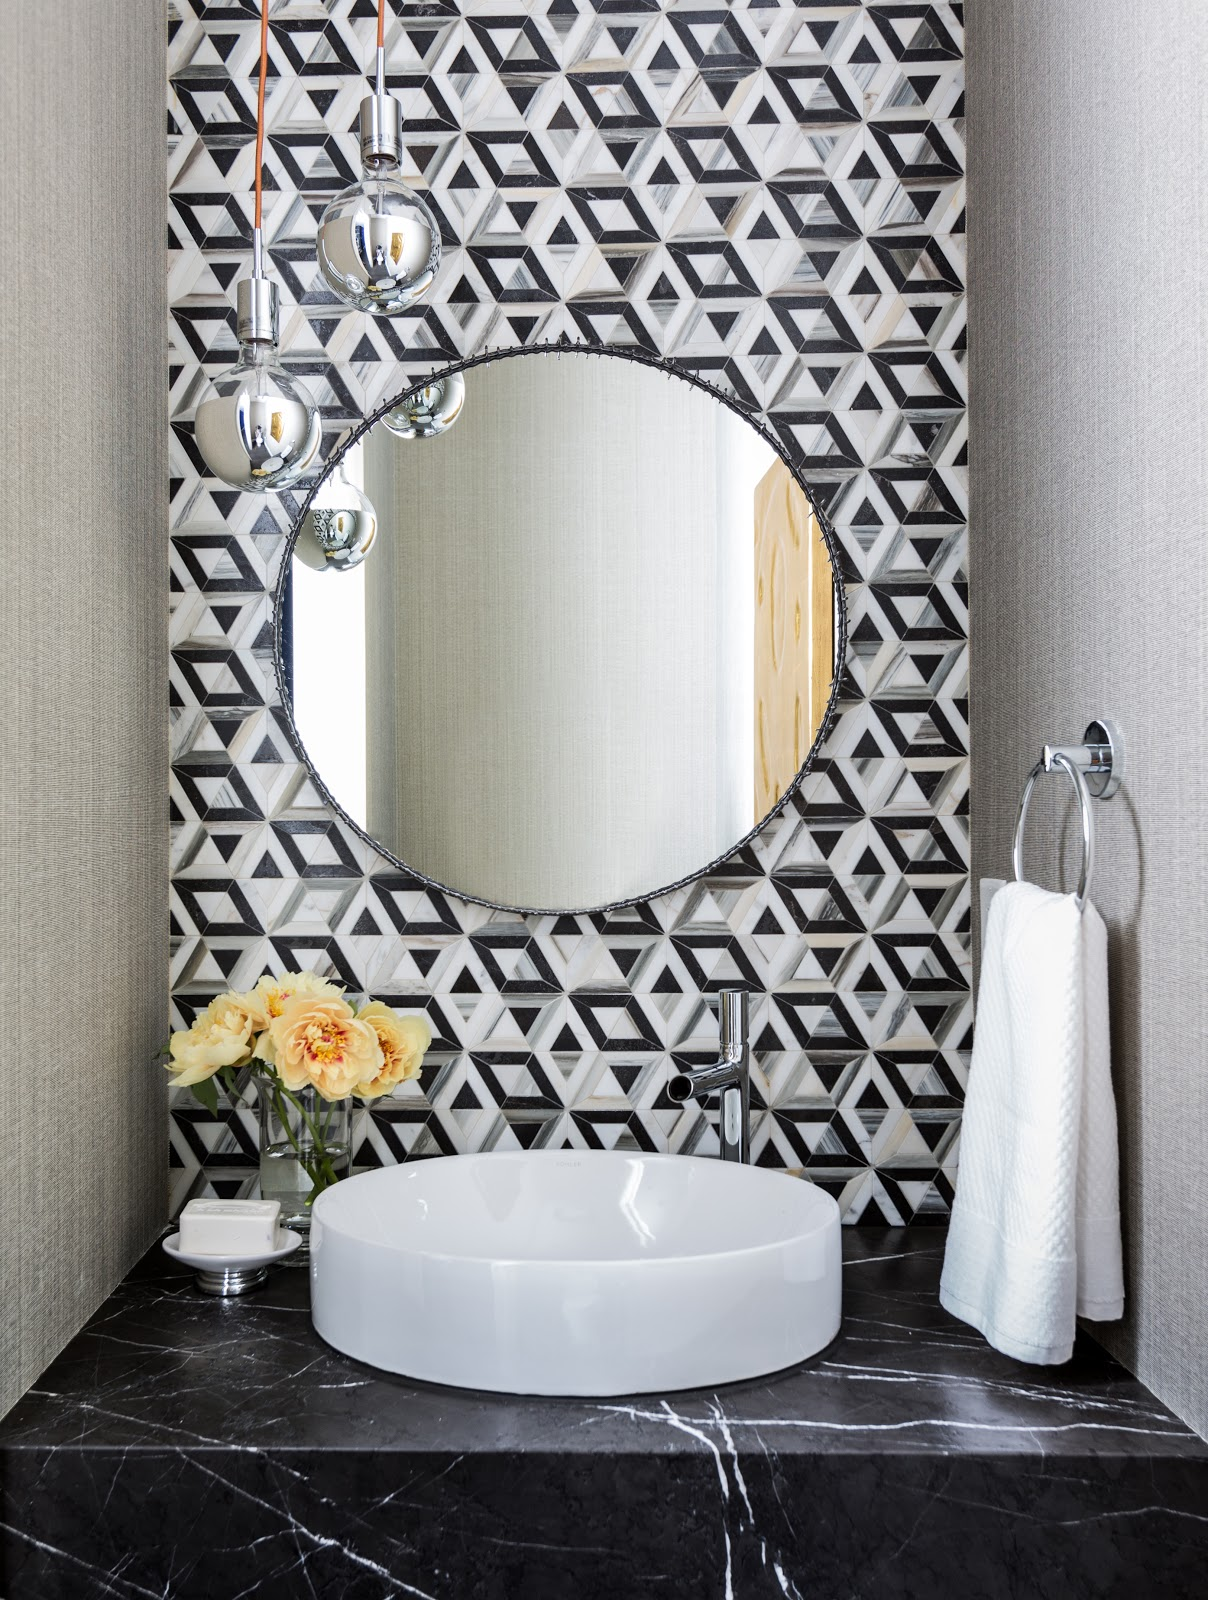 Liaison Kelly Wearstler tile by Ann Sacks - Ohorona24.in.ua Interior design black and white powder bathroom